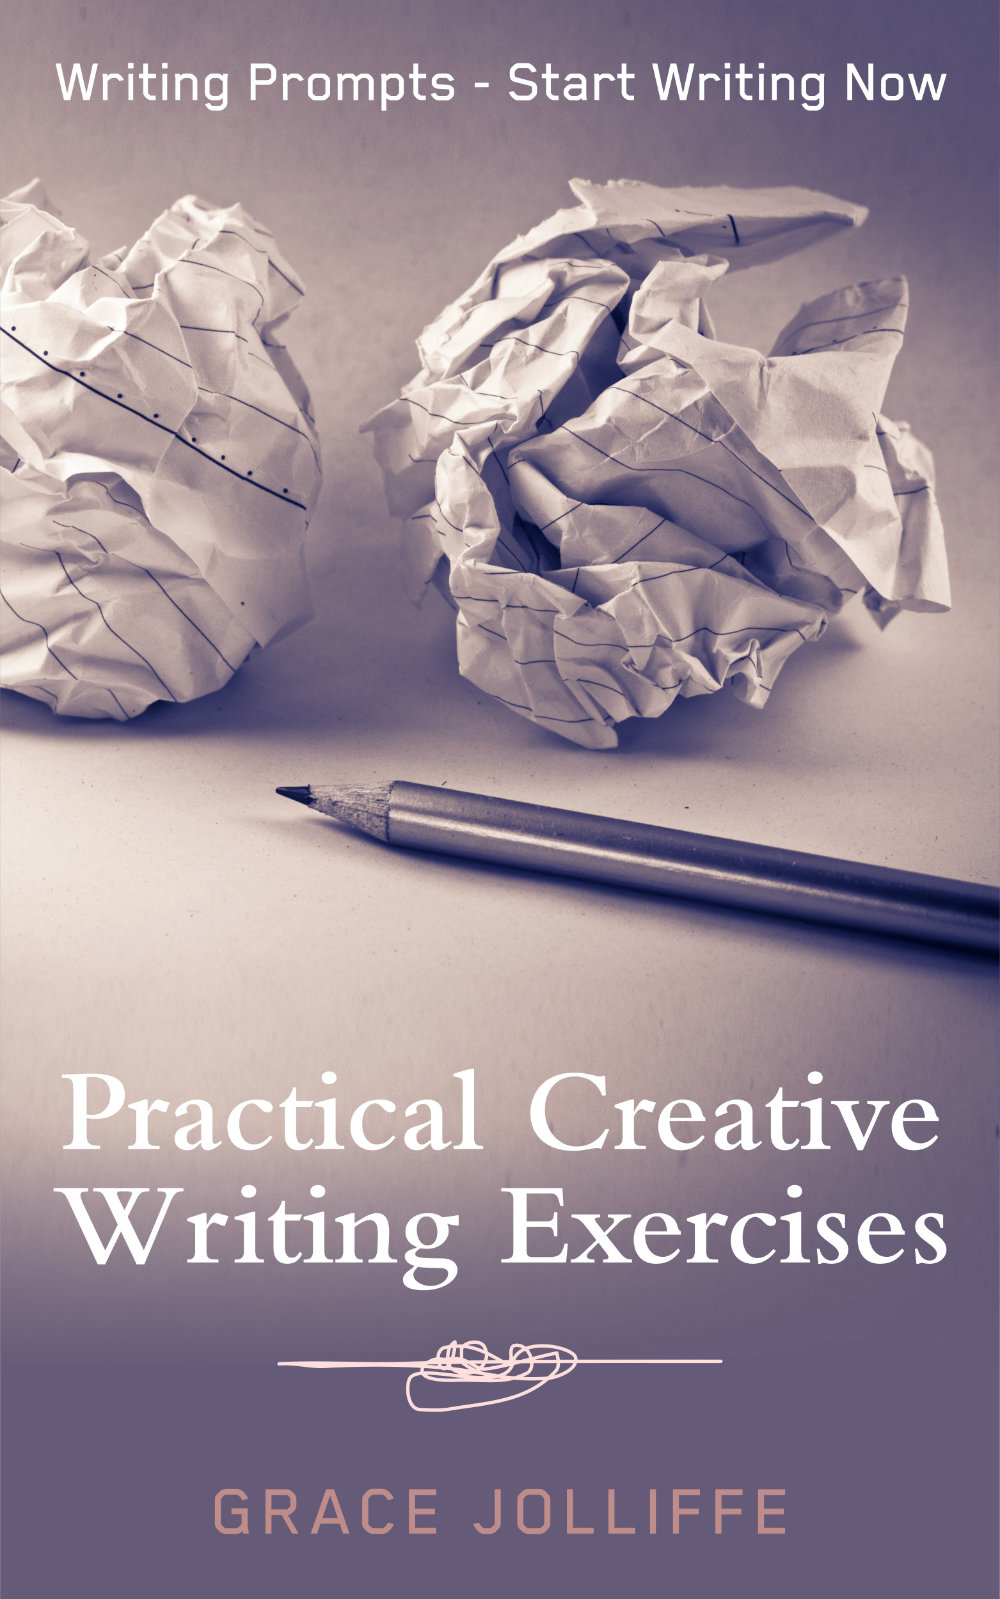 Ten Minute Writing Exercises Quick And Easy Exercises To Slot